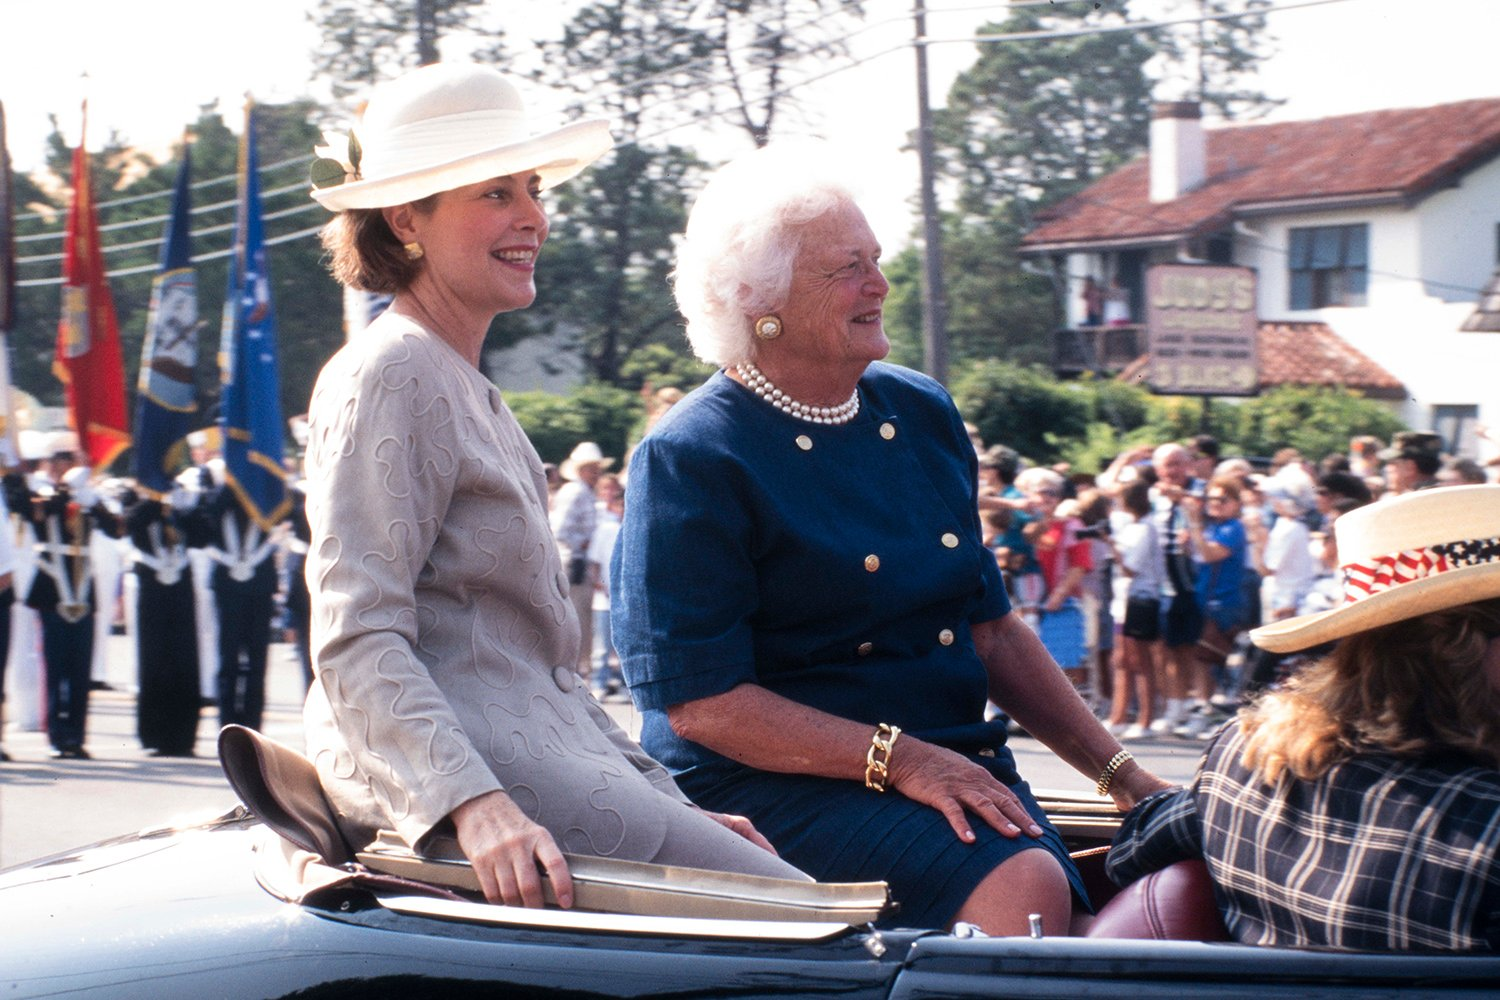 Former First Lady Barbara Bush and daughter-in-law Laura Bush attend a dedication at the Nimitz Museum in Fredricksburg on Sept. 6, 1998.